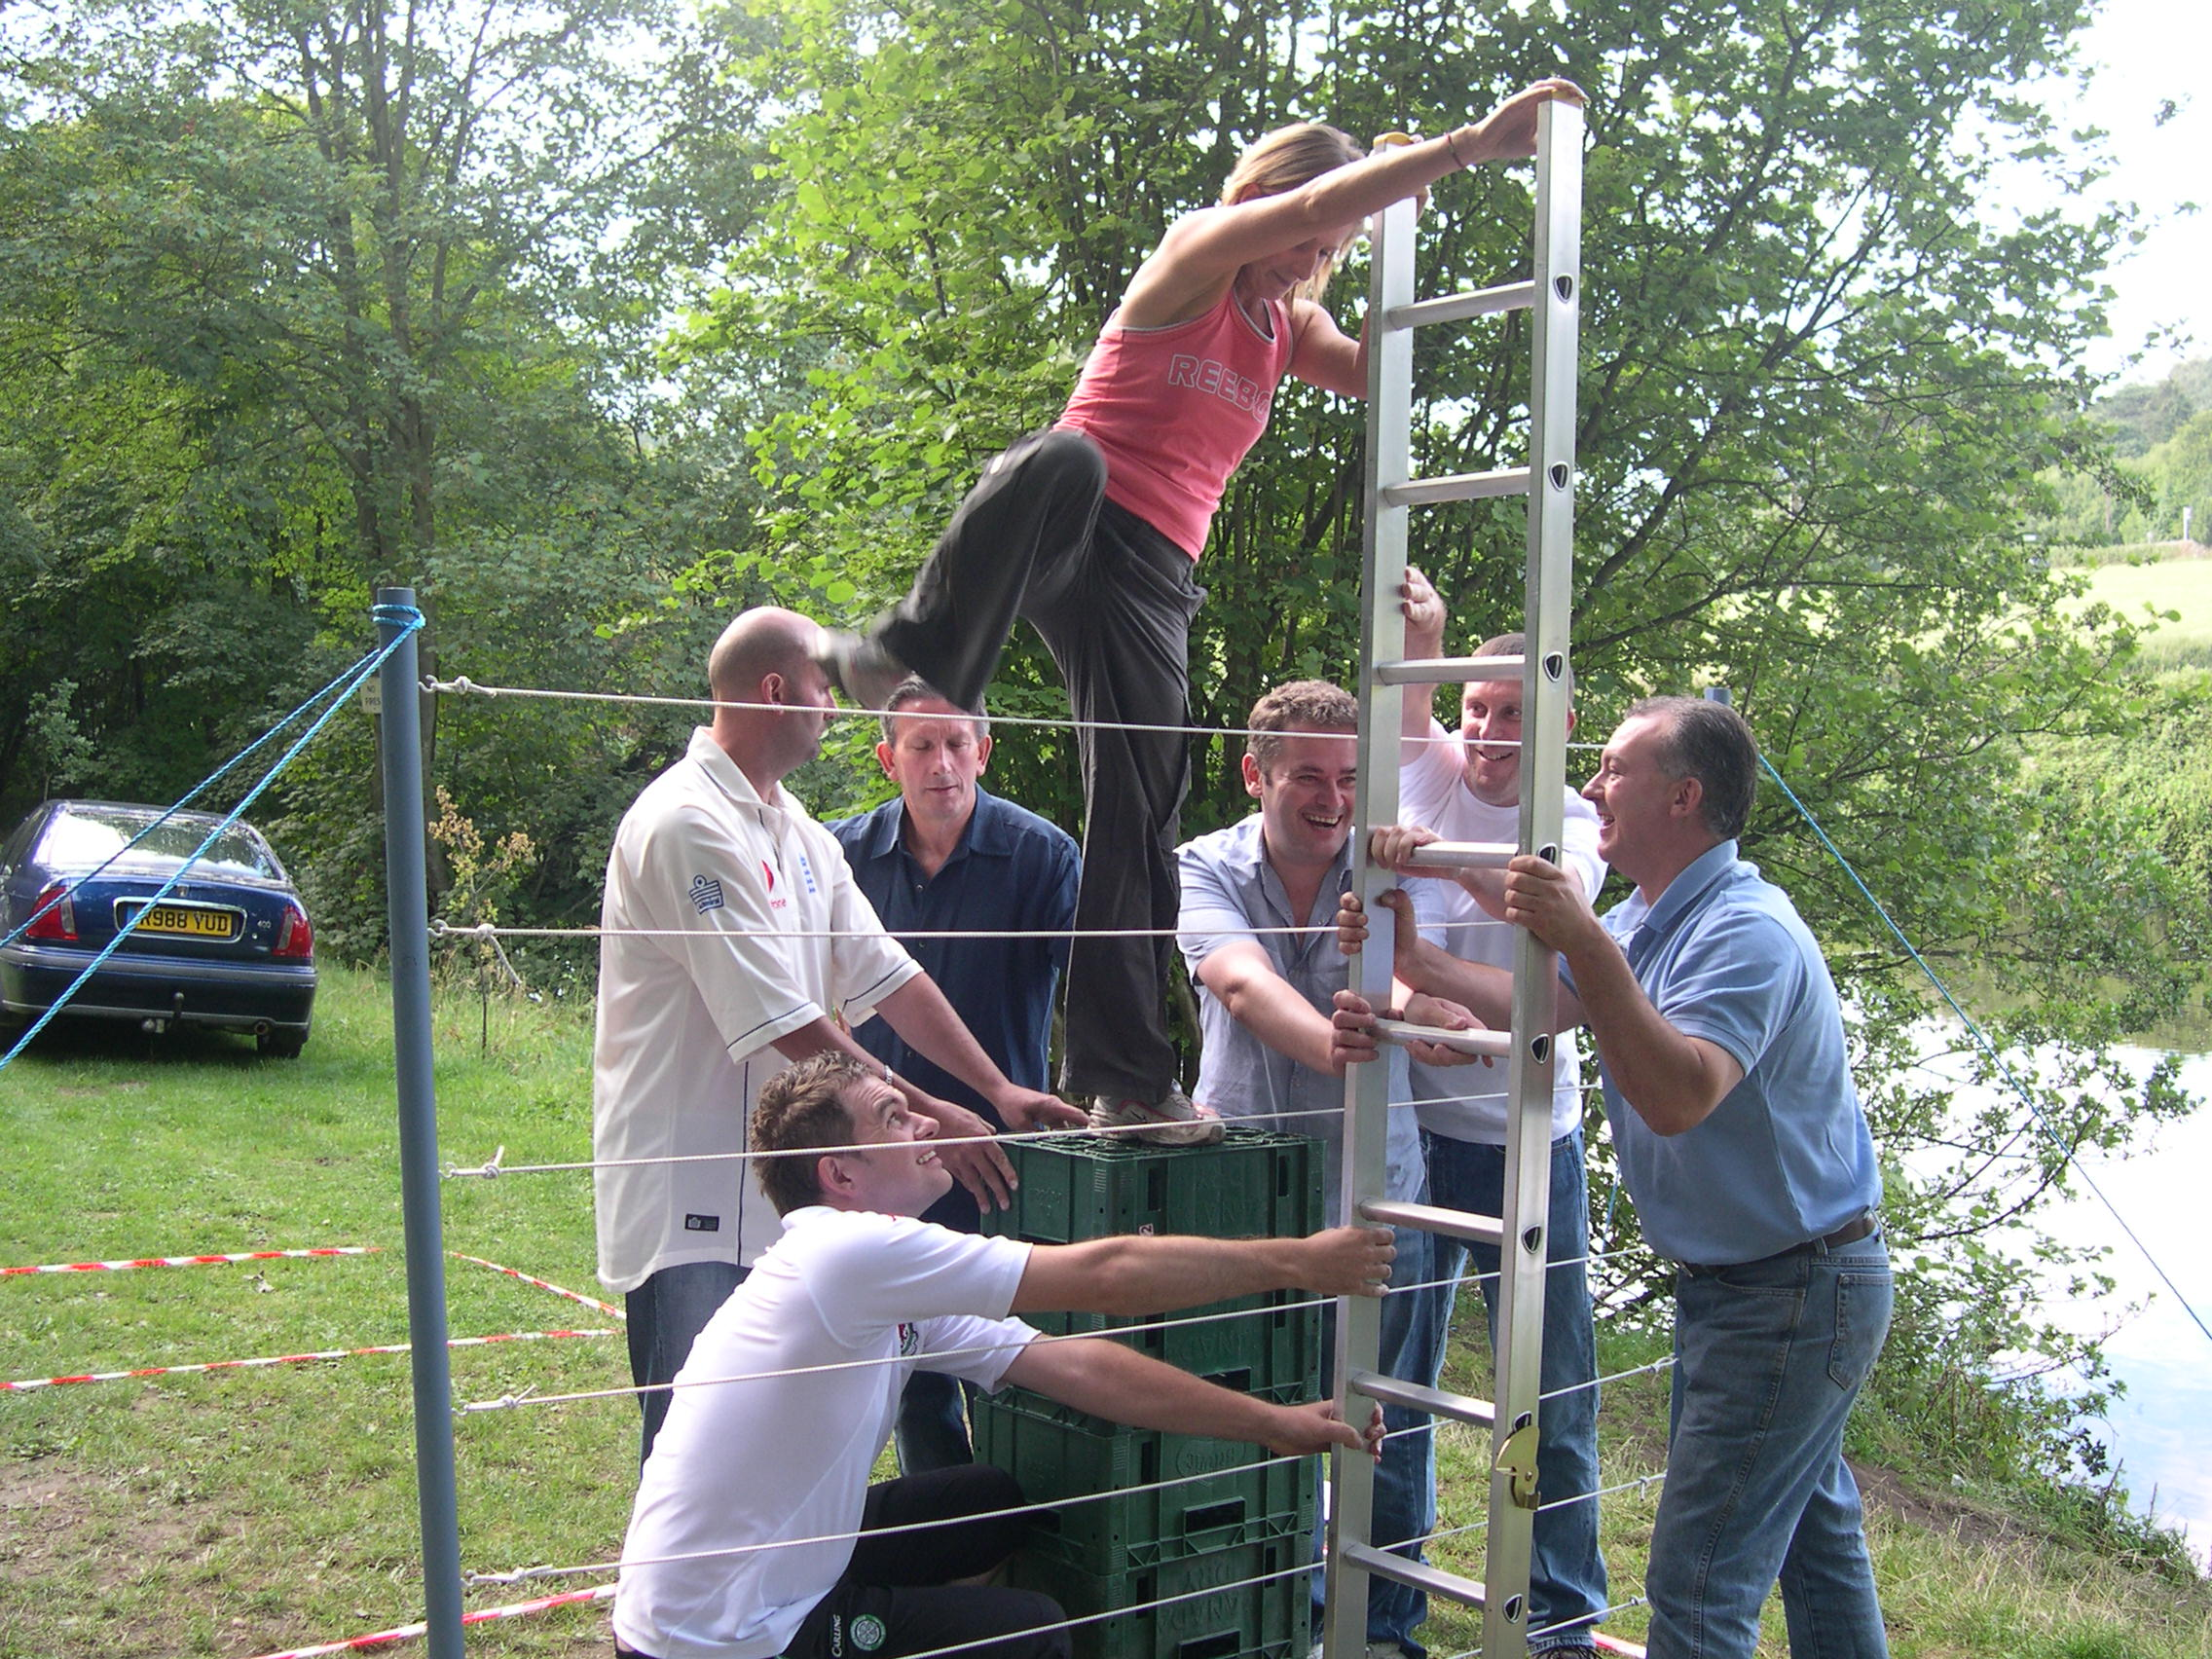 Corporate Events And Outdoor Activity Team Building With